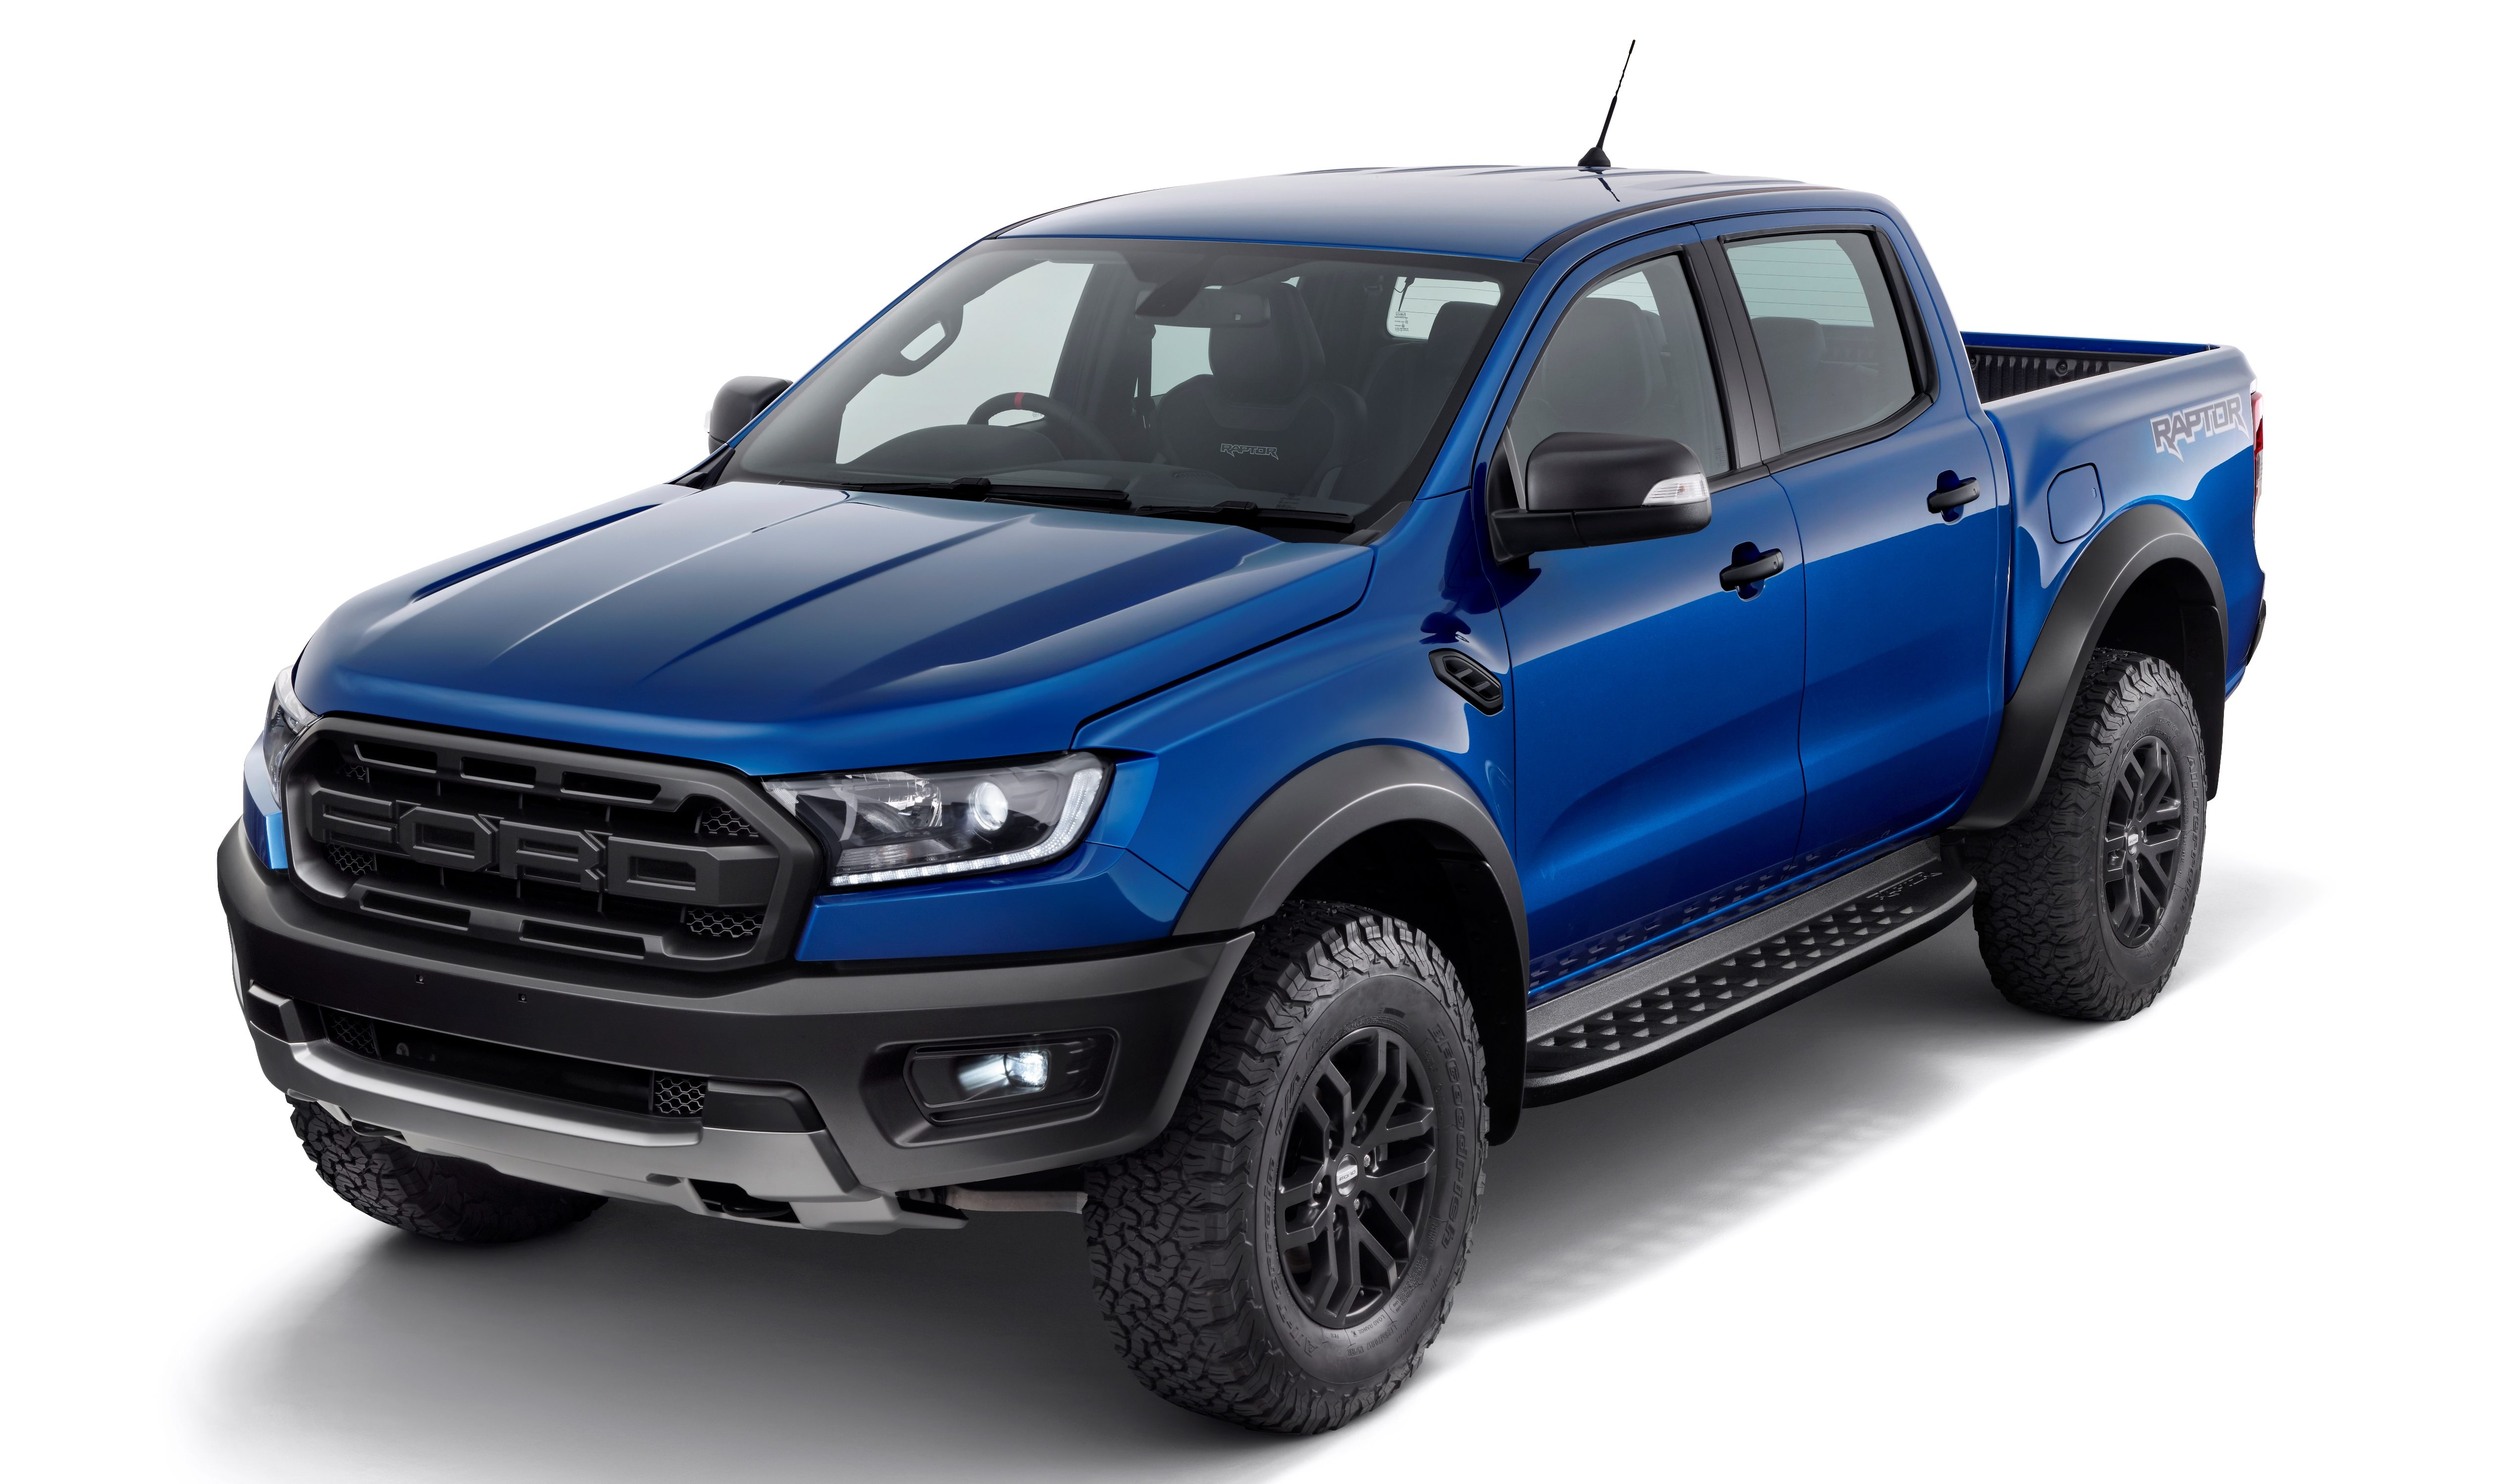 Ford Ranger Raptor is a performance pickup for Asia Pacific